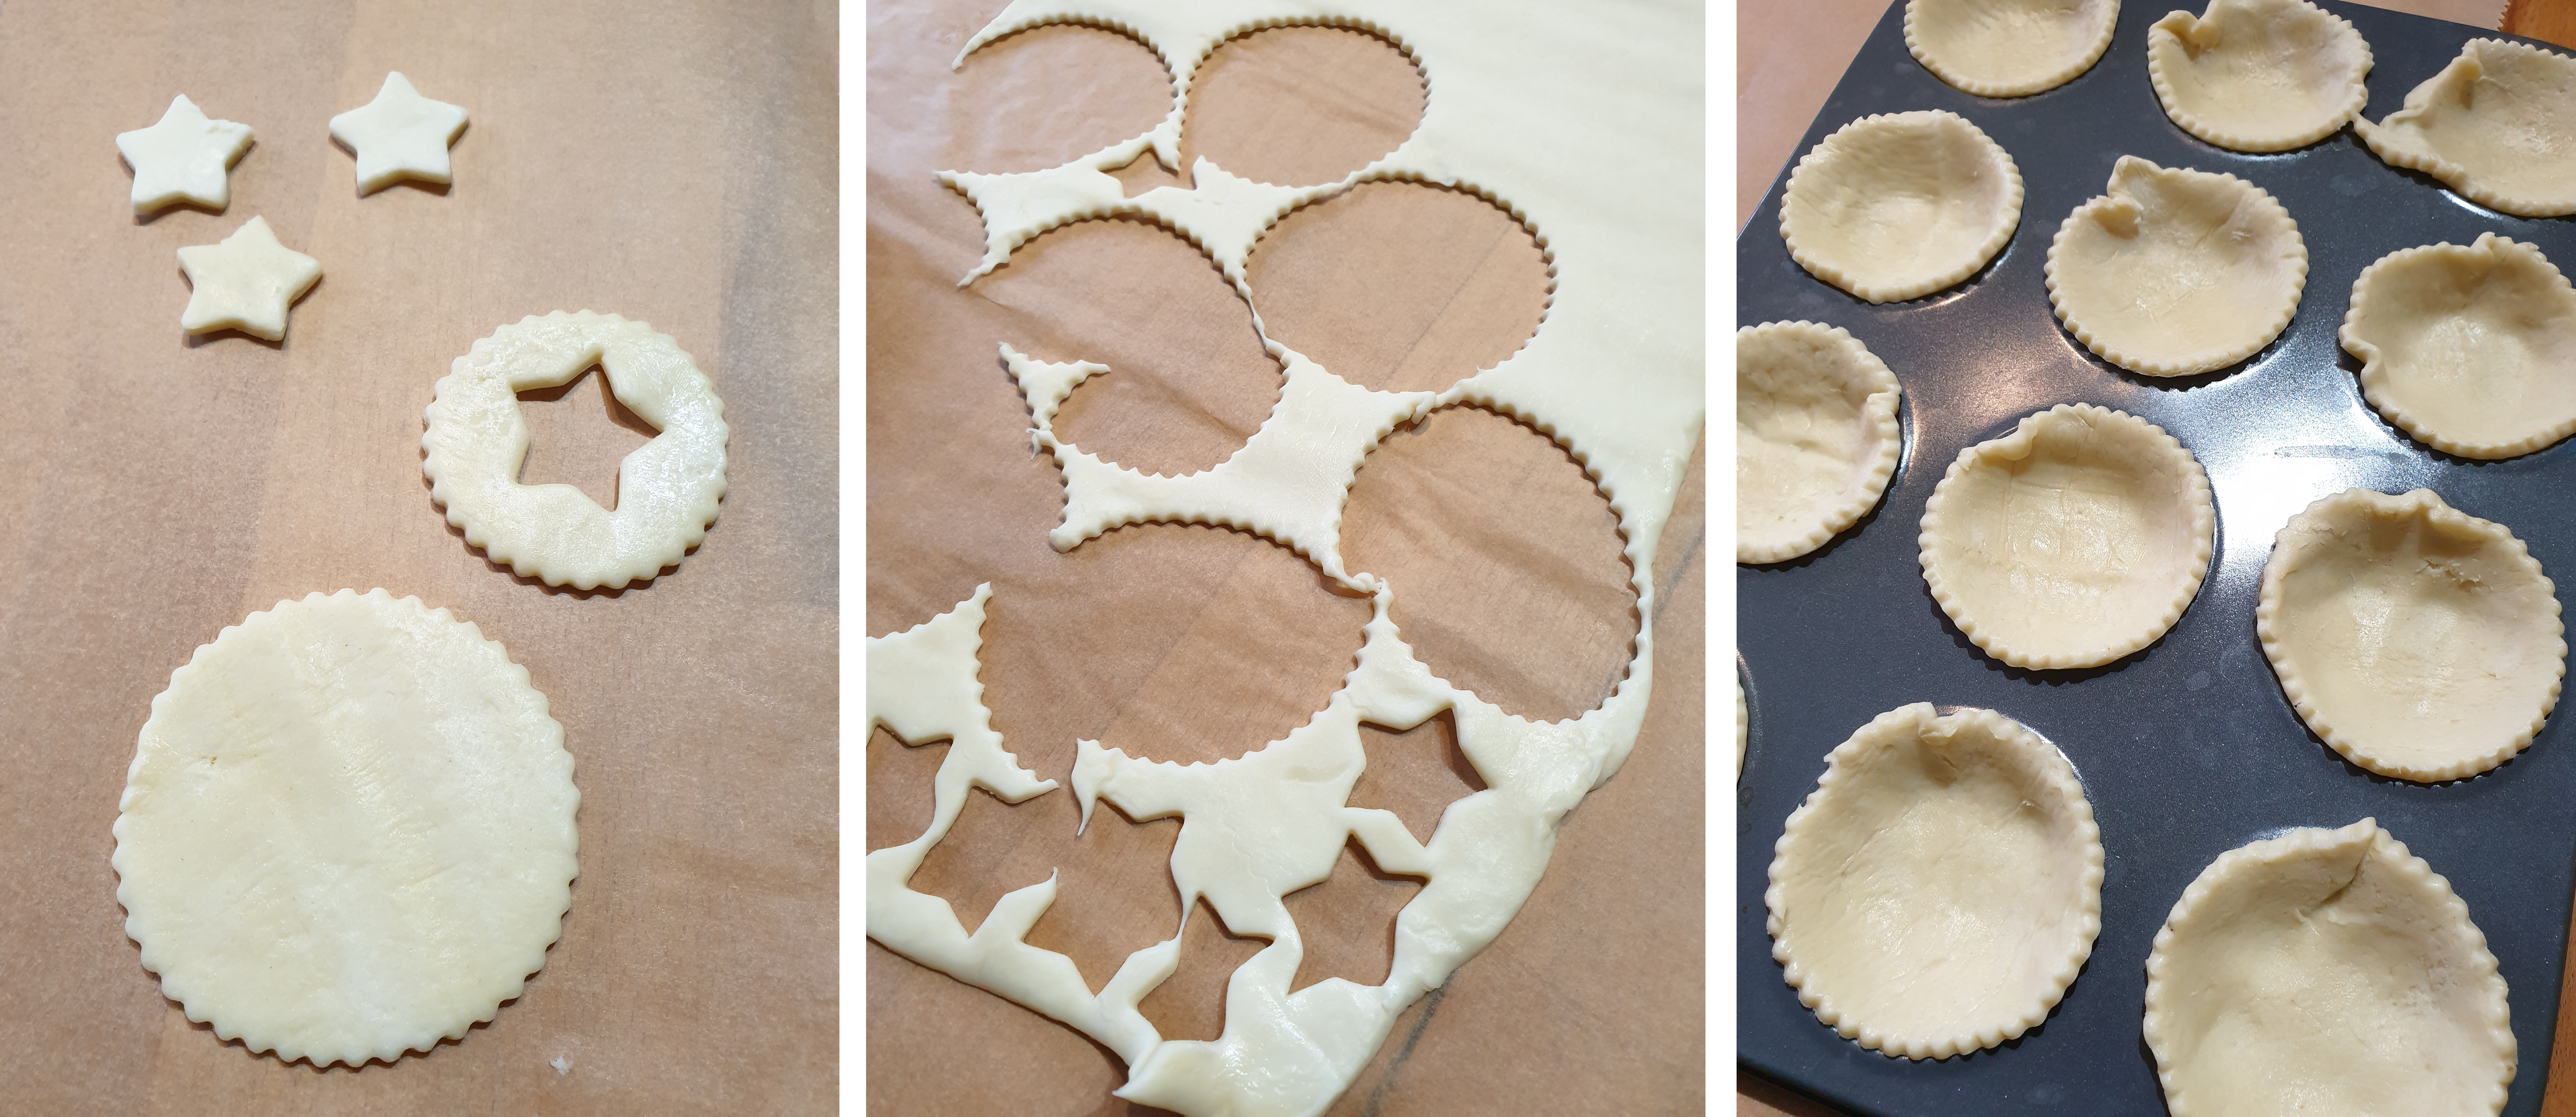 Mince Pies step by step 1